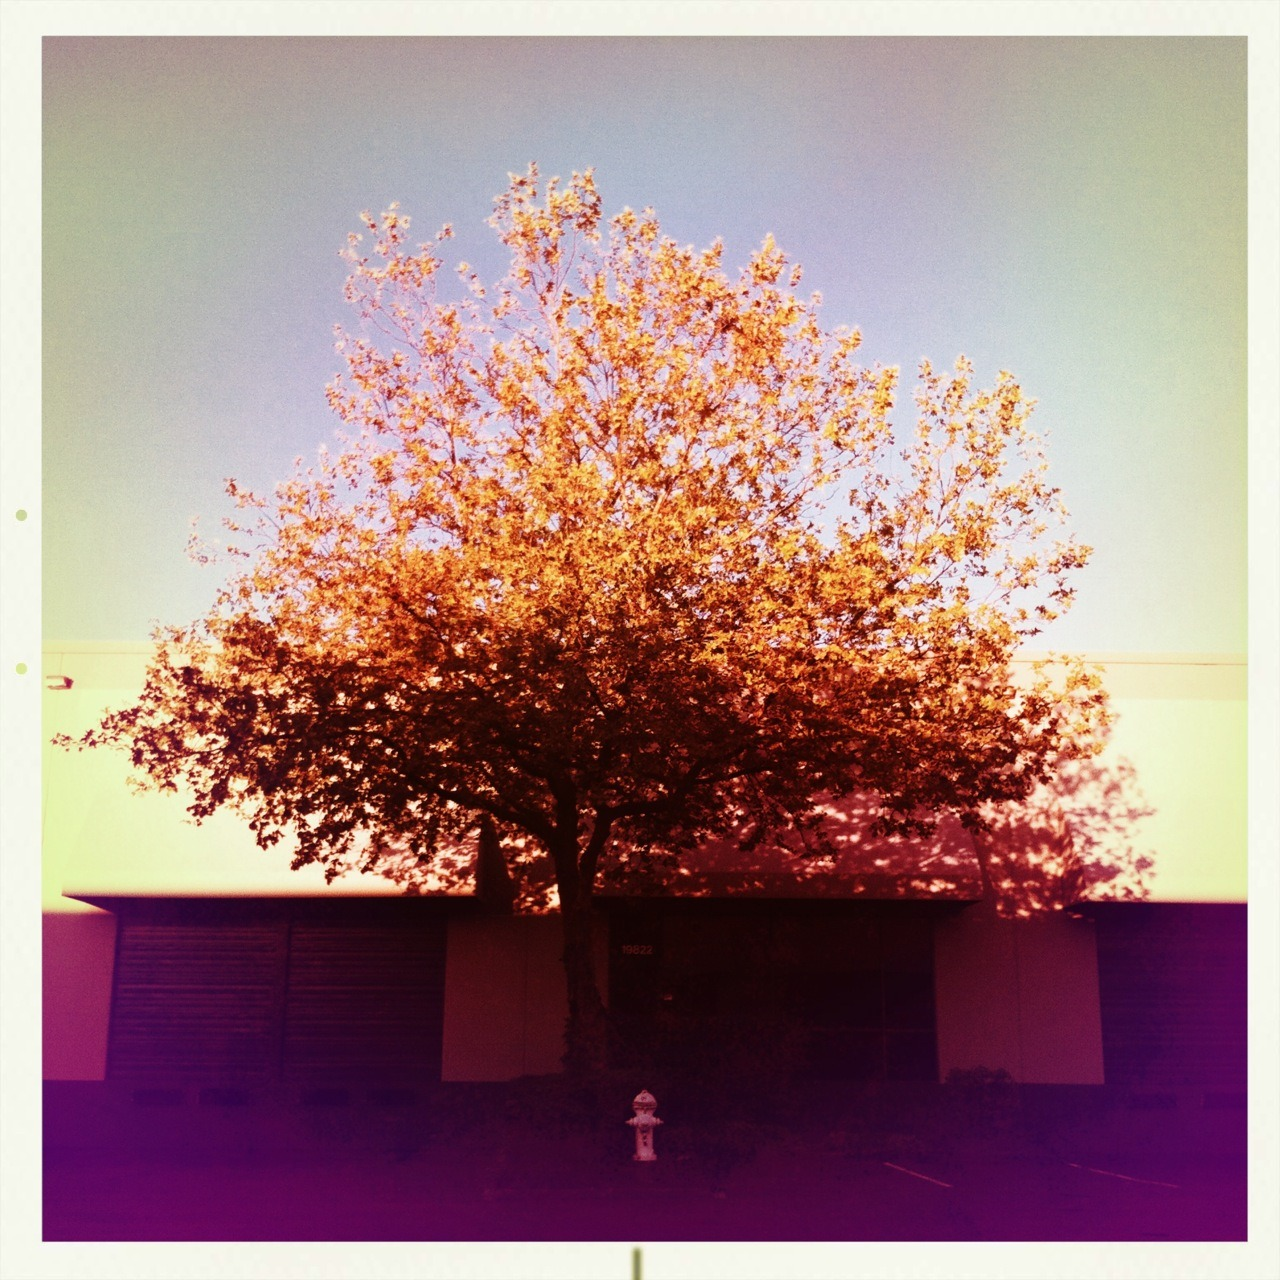 Tree At Sunset Melodie Lens, Alfred Infrared Film, No Flash, Taken with Hipstamatic #Hipstacode_MDAL © Kent Kangley 2012